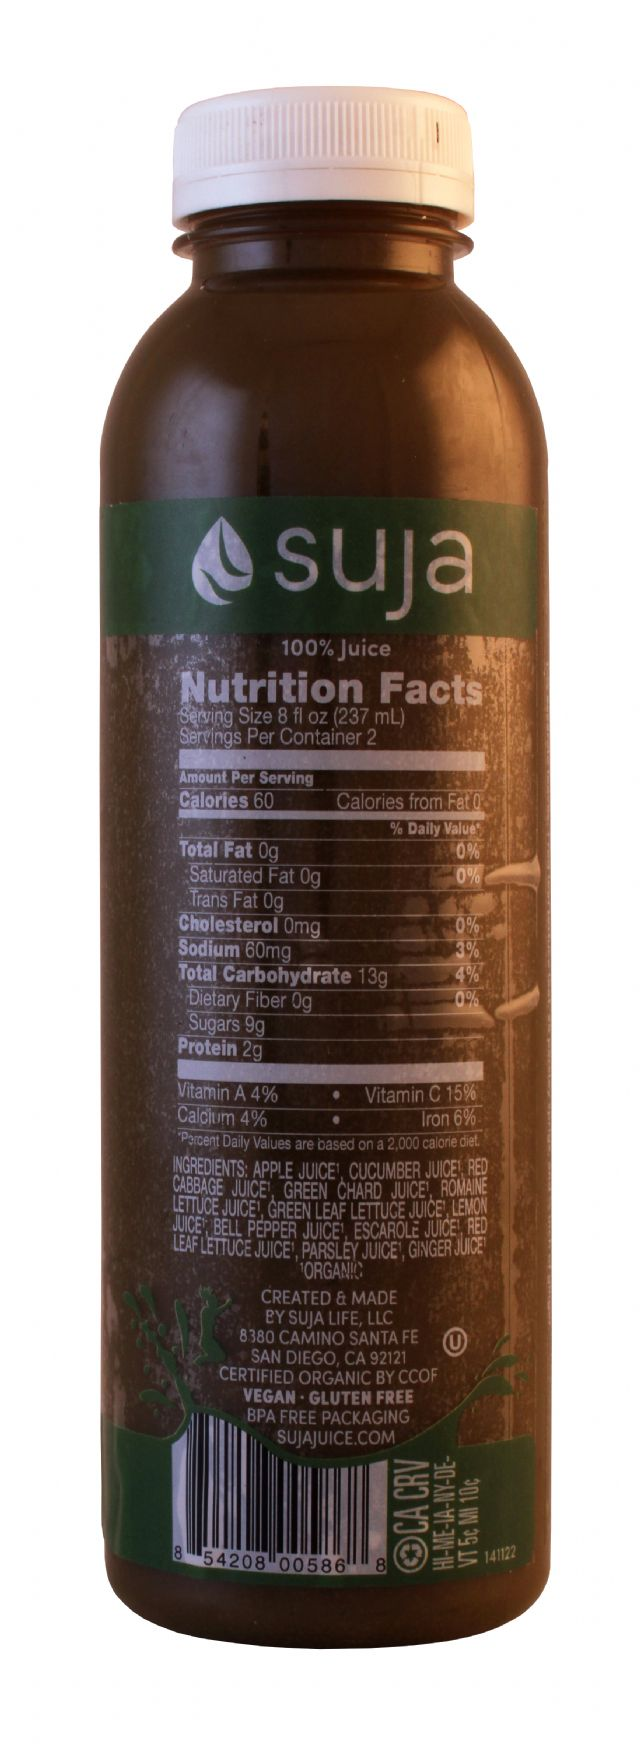 Suja Classic: Suja Fortitude Facts